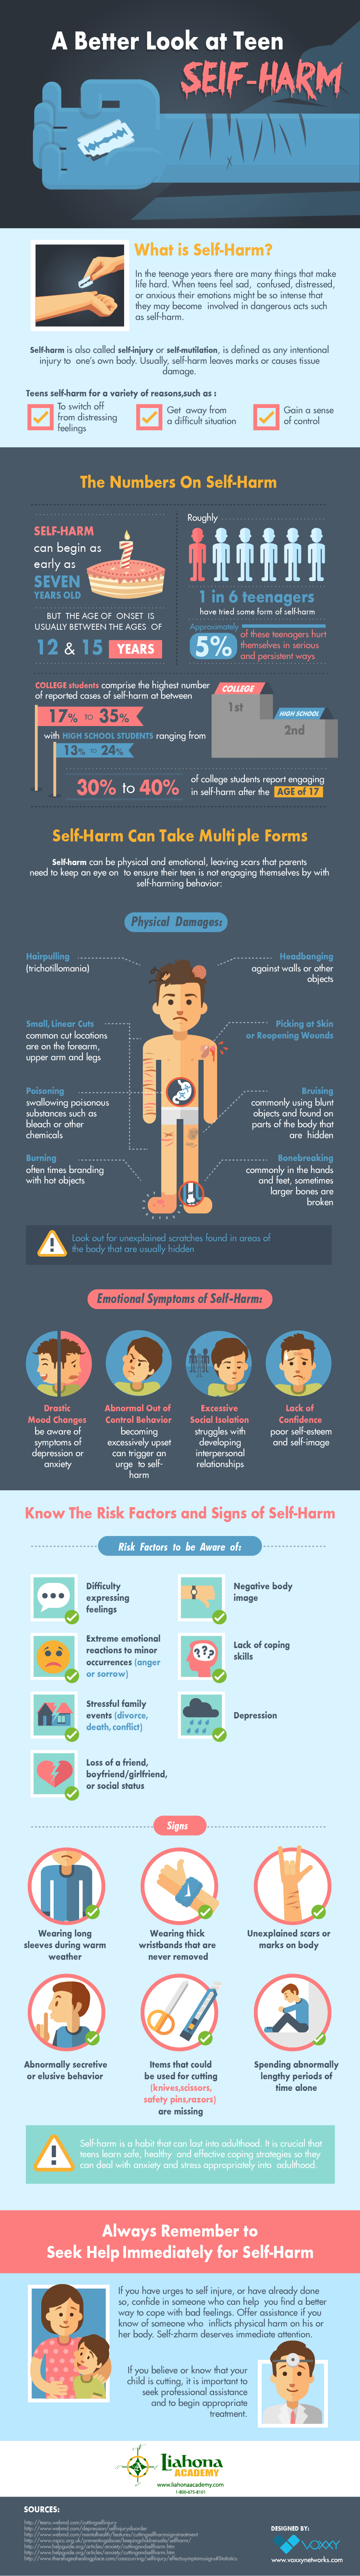 a-better-look-at-teen-self-harm-infographic